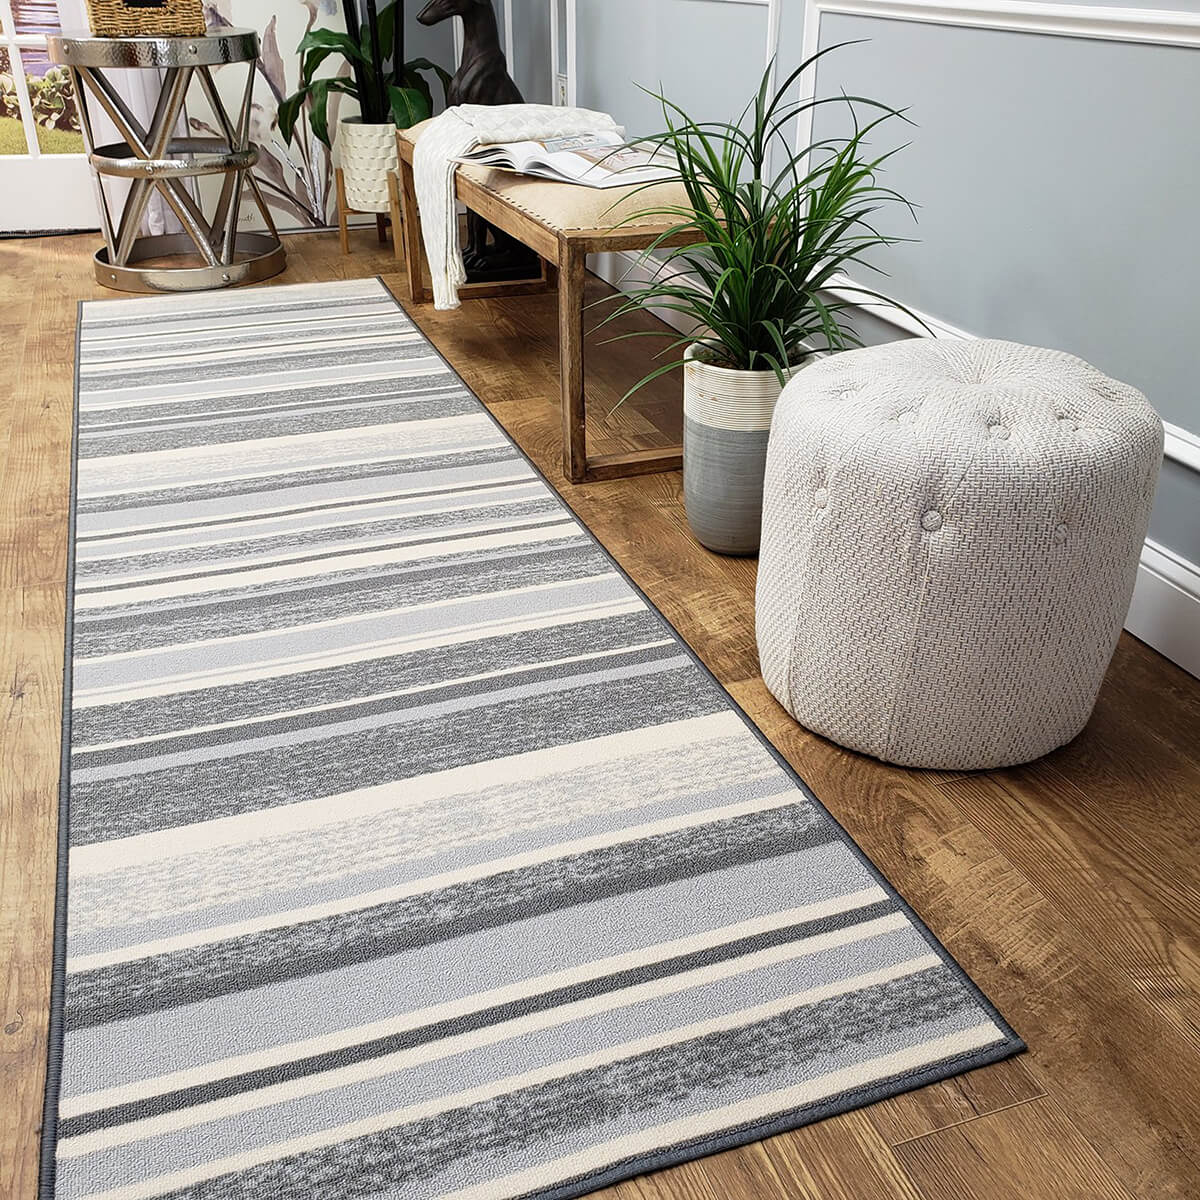 Thin and Light Gray Striped Rug